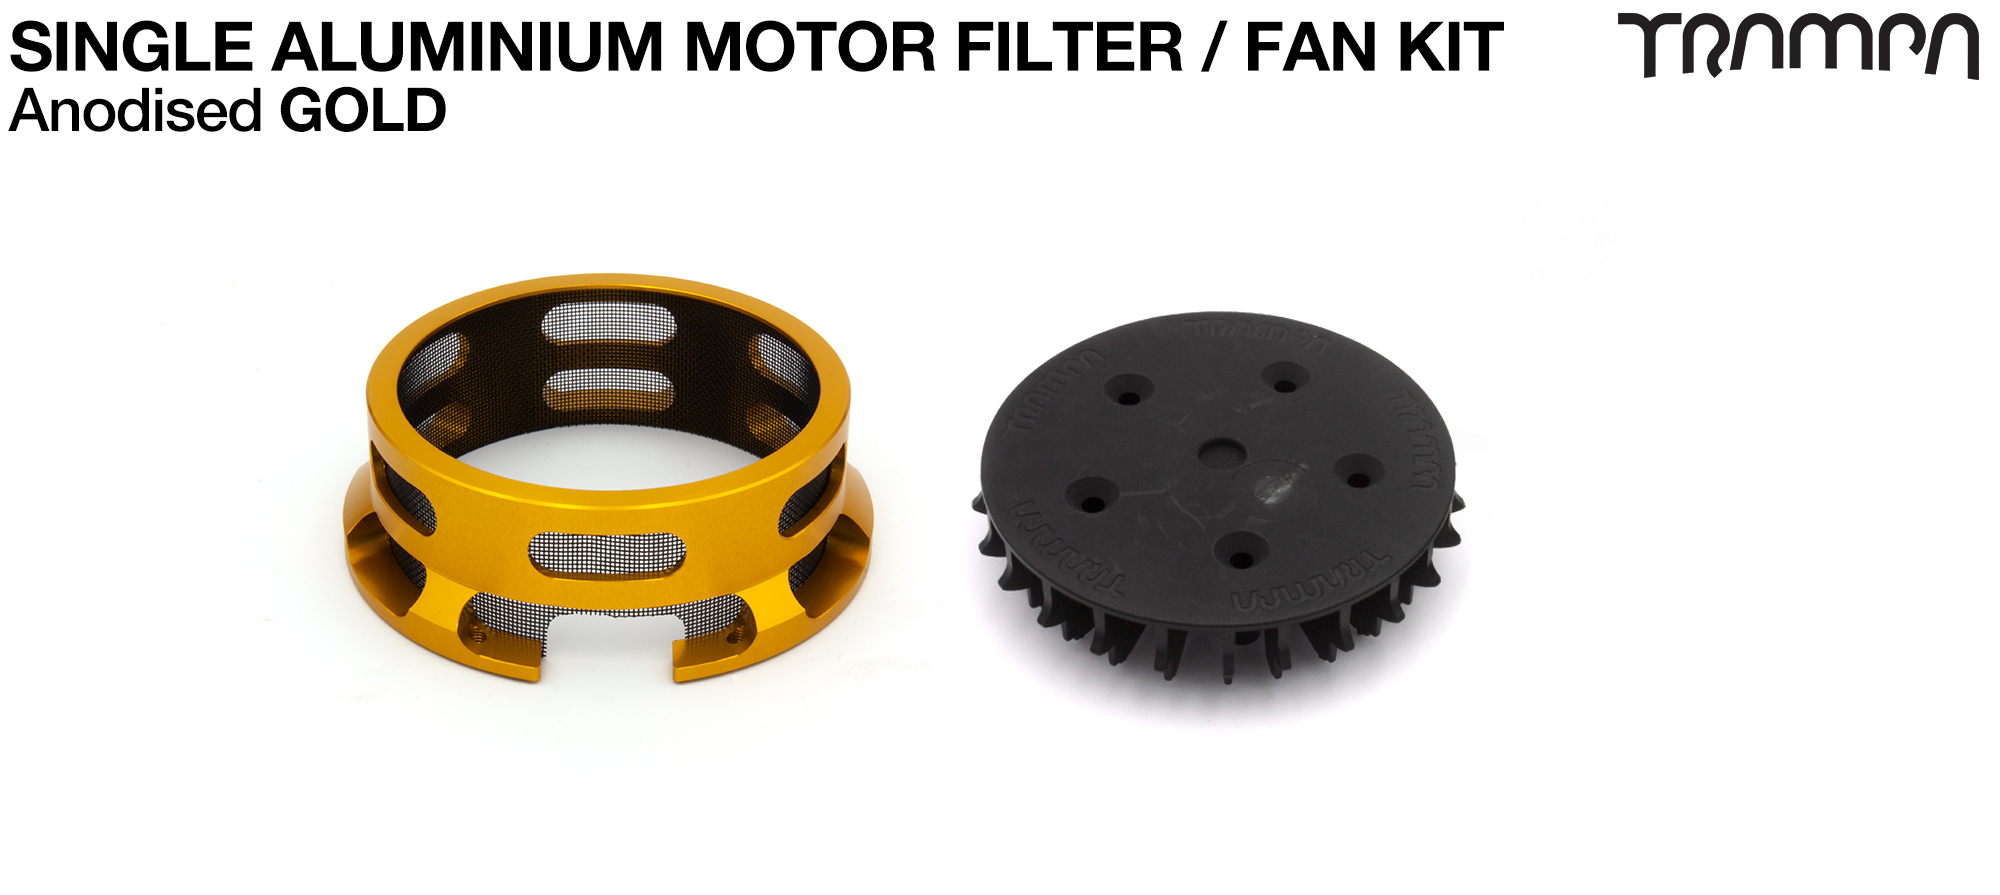 14FiFties BLACK Motor protection Housing with GOLD particle Filter & Fan - SINGLE